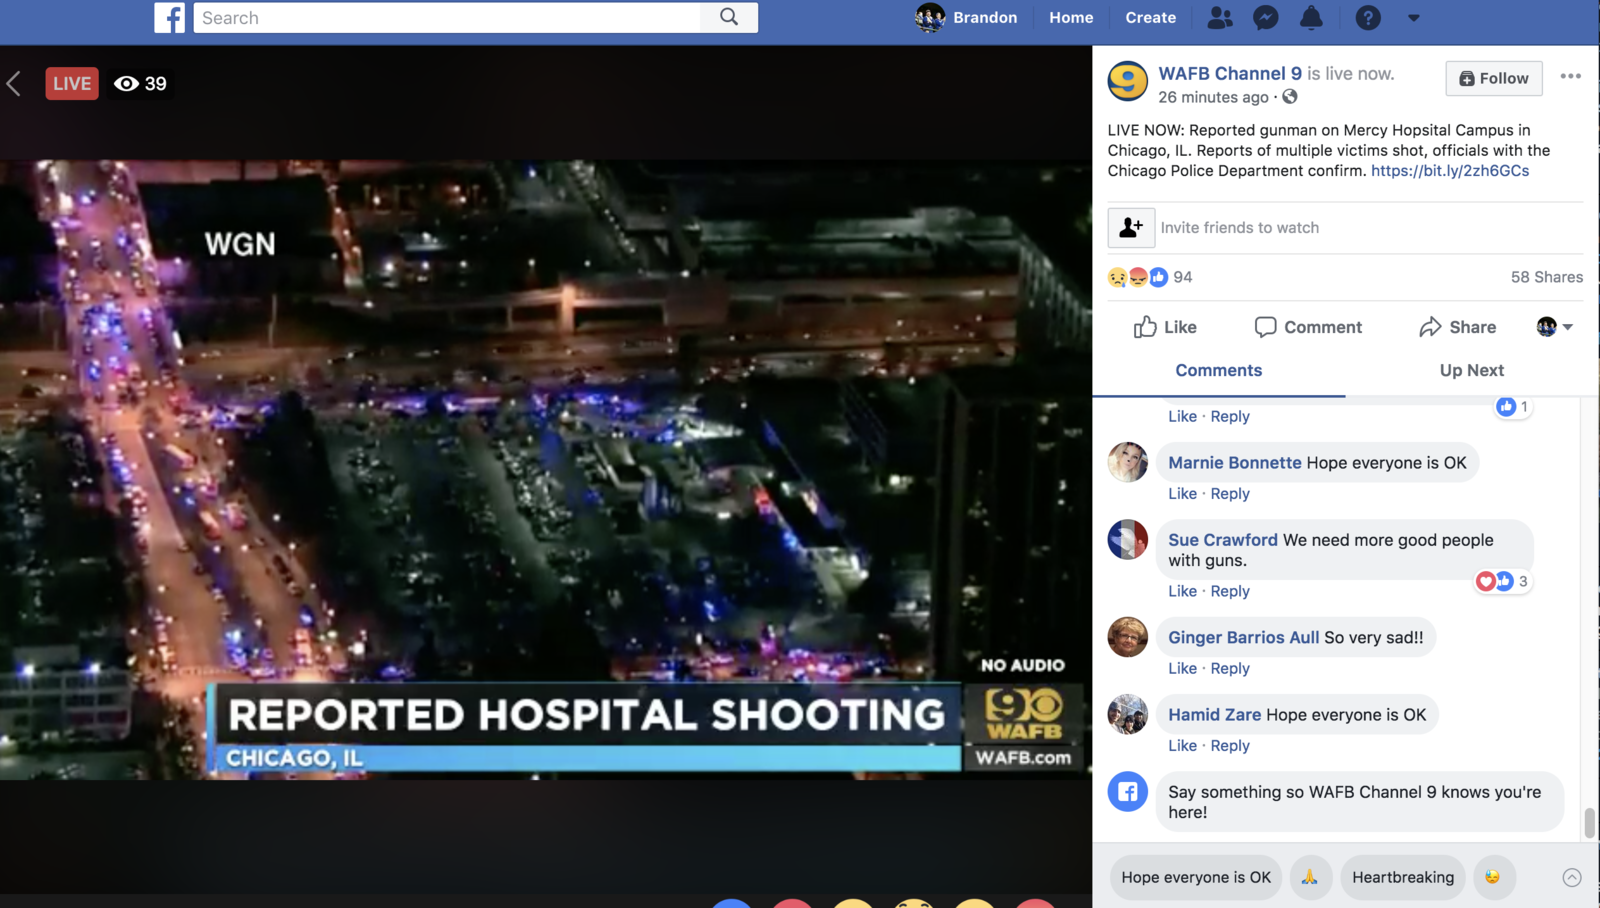 Facebook Is Testing Auto-Responses For Live Video And Some Of The Suggestions Are Offending People